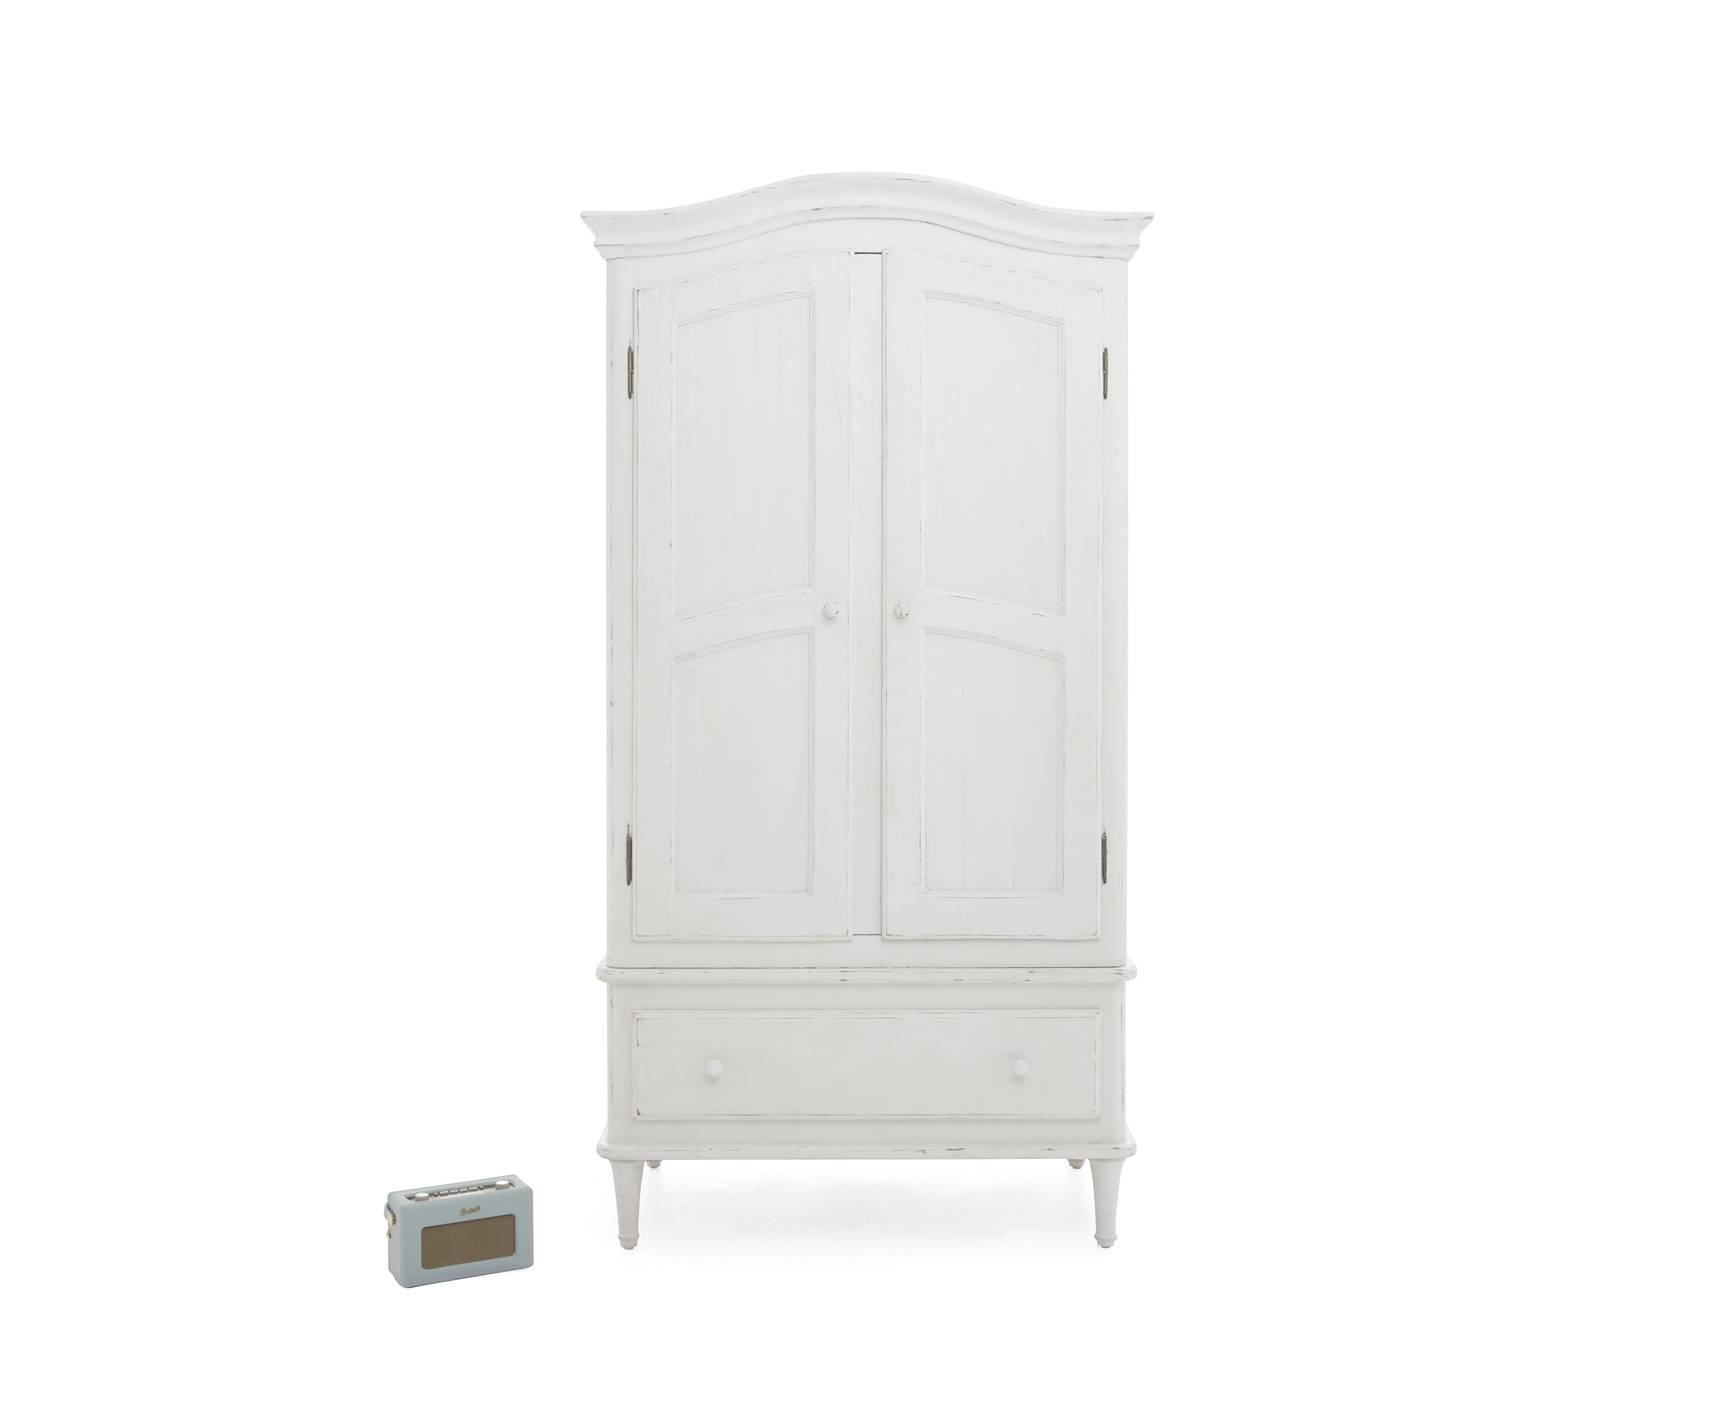 Timbers Wardrobe | White Painted Wardrobe | Loaf within White Vintage Wardrobes (Image 12 of 15)